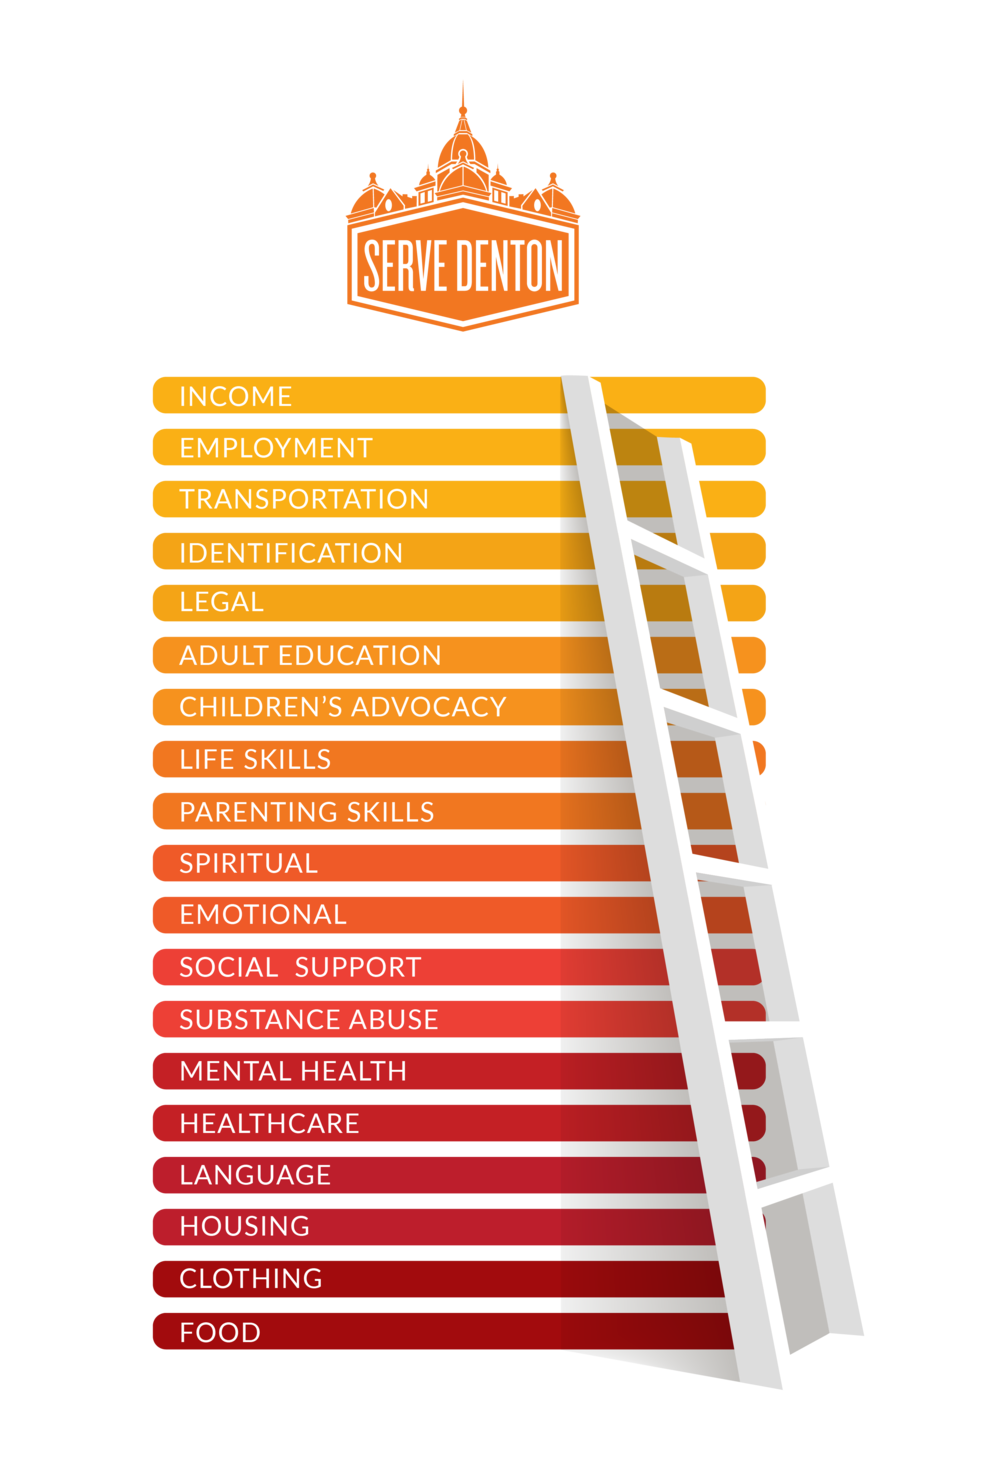 Serve Denton Self-Sufficiency Ladder